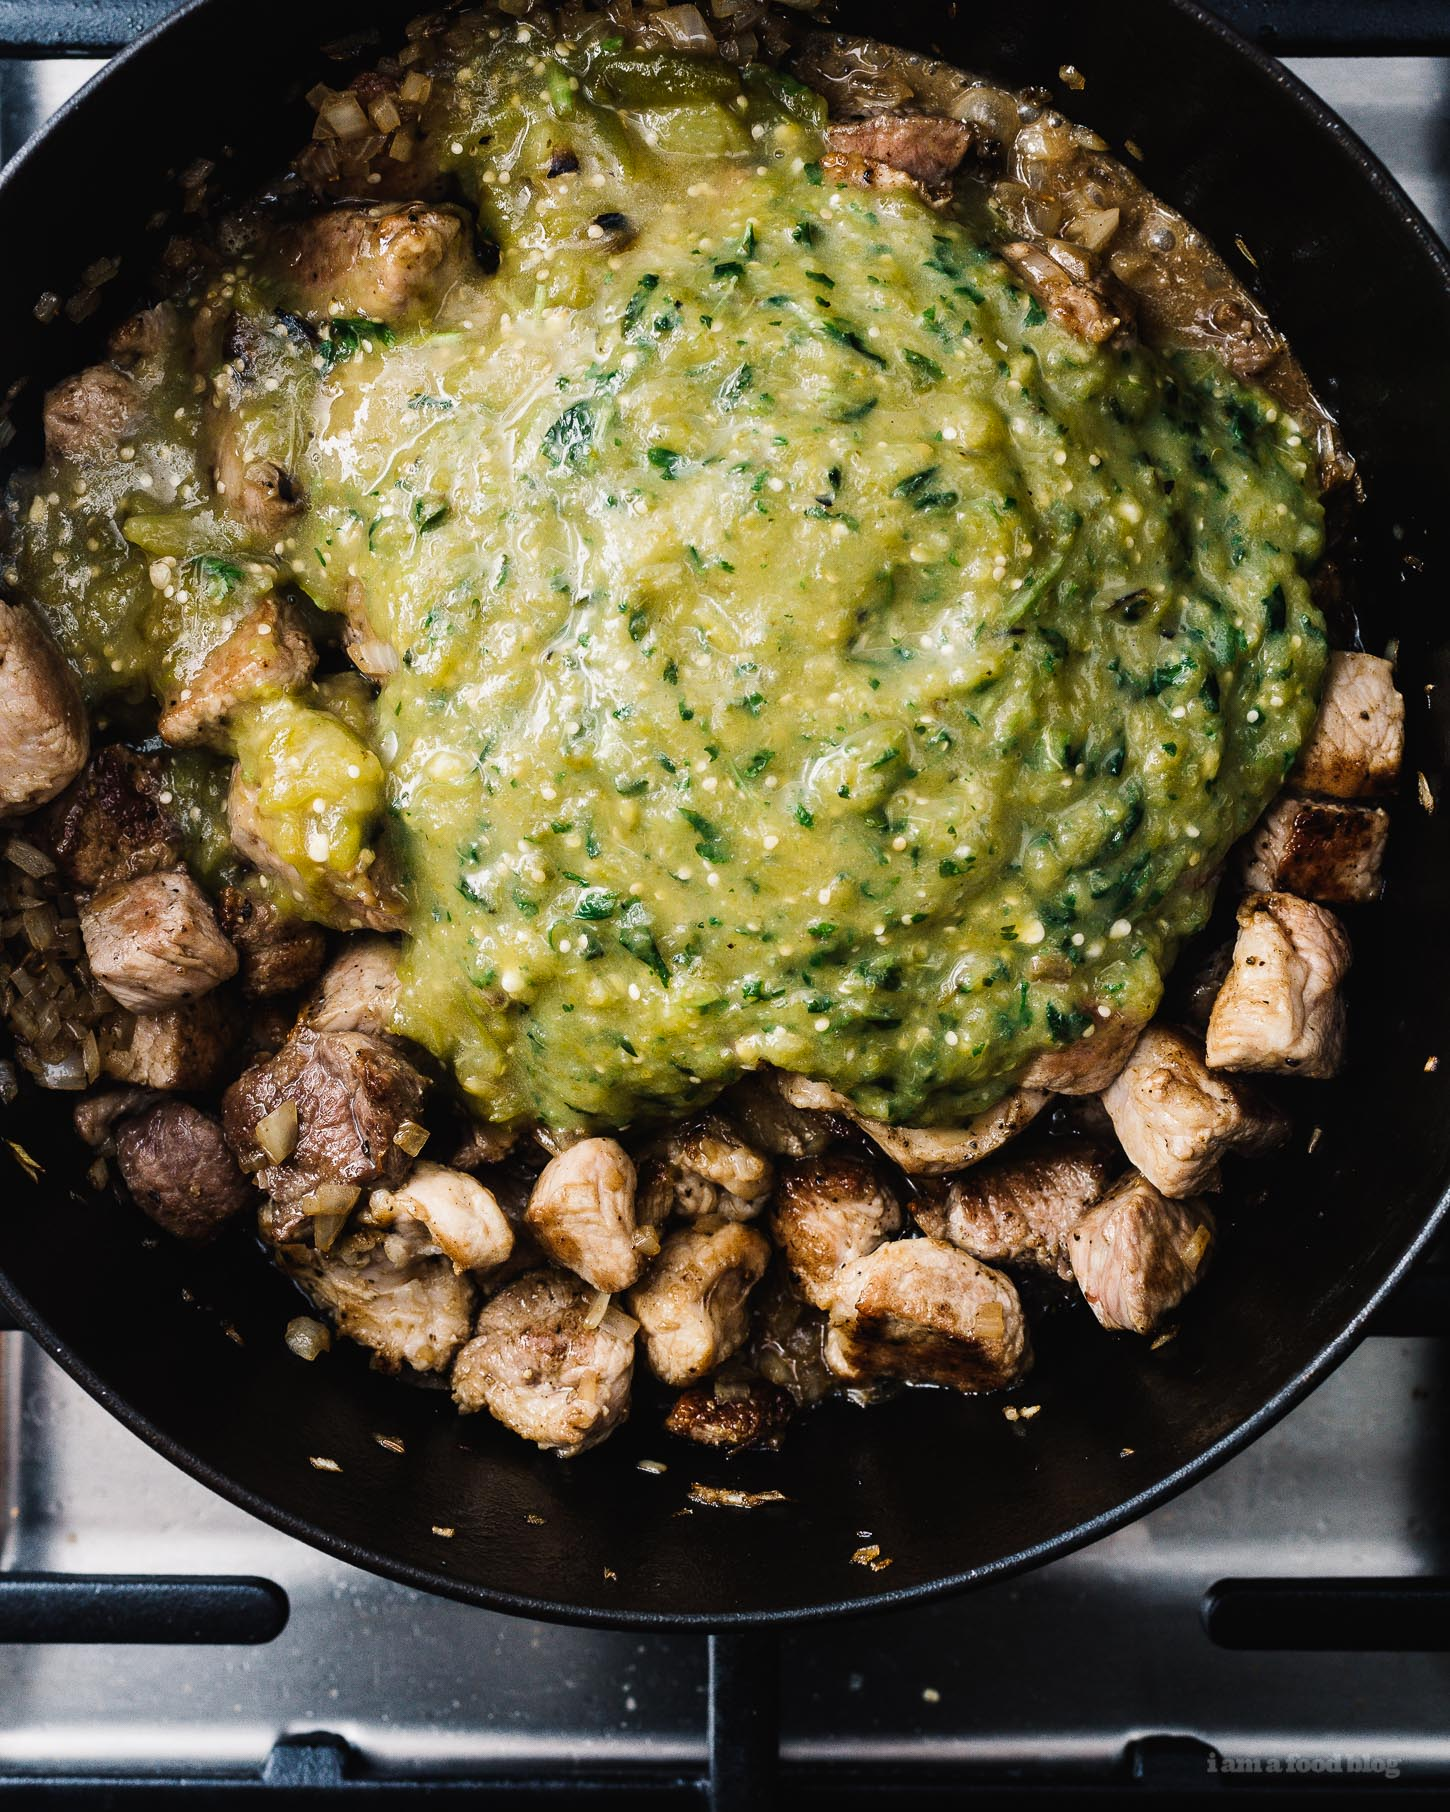 Slow Cooker Green Chili Hatch Chile Verde Recipe | www.iamafoodblog.com